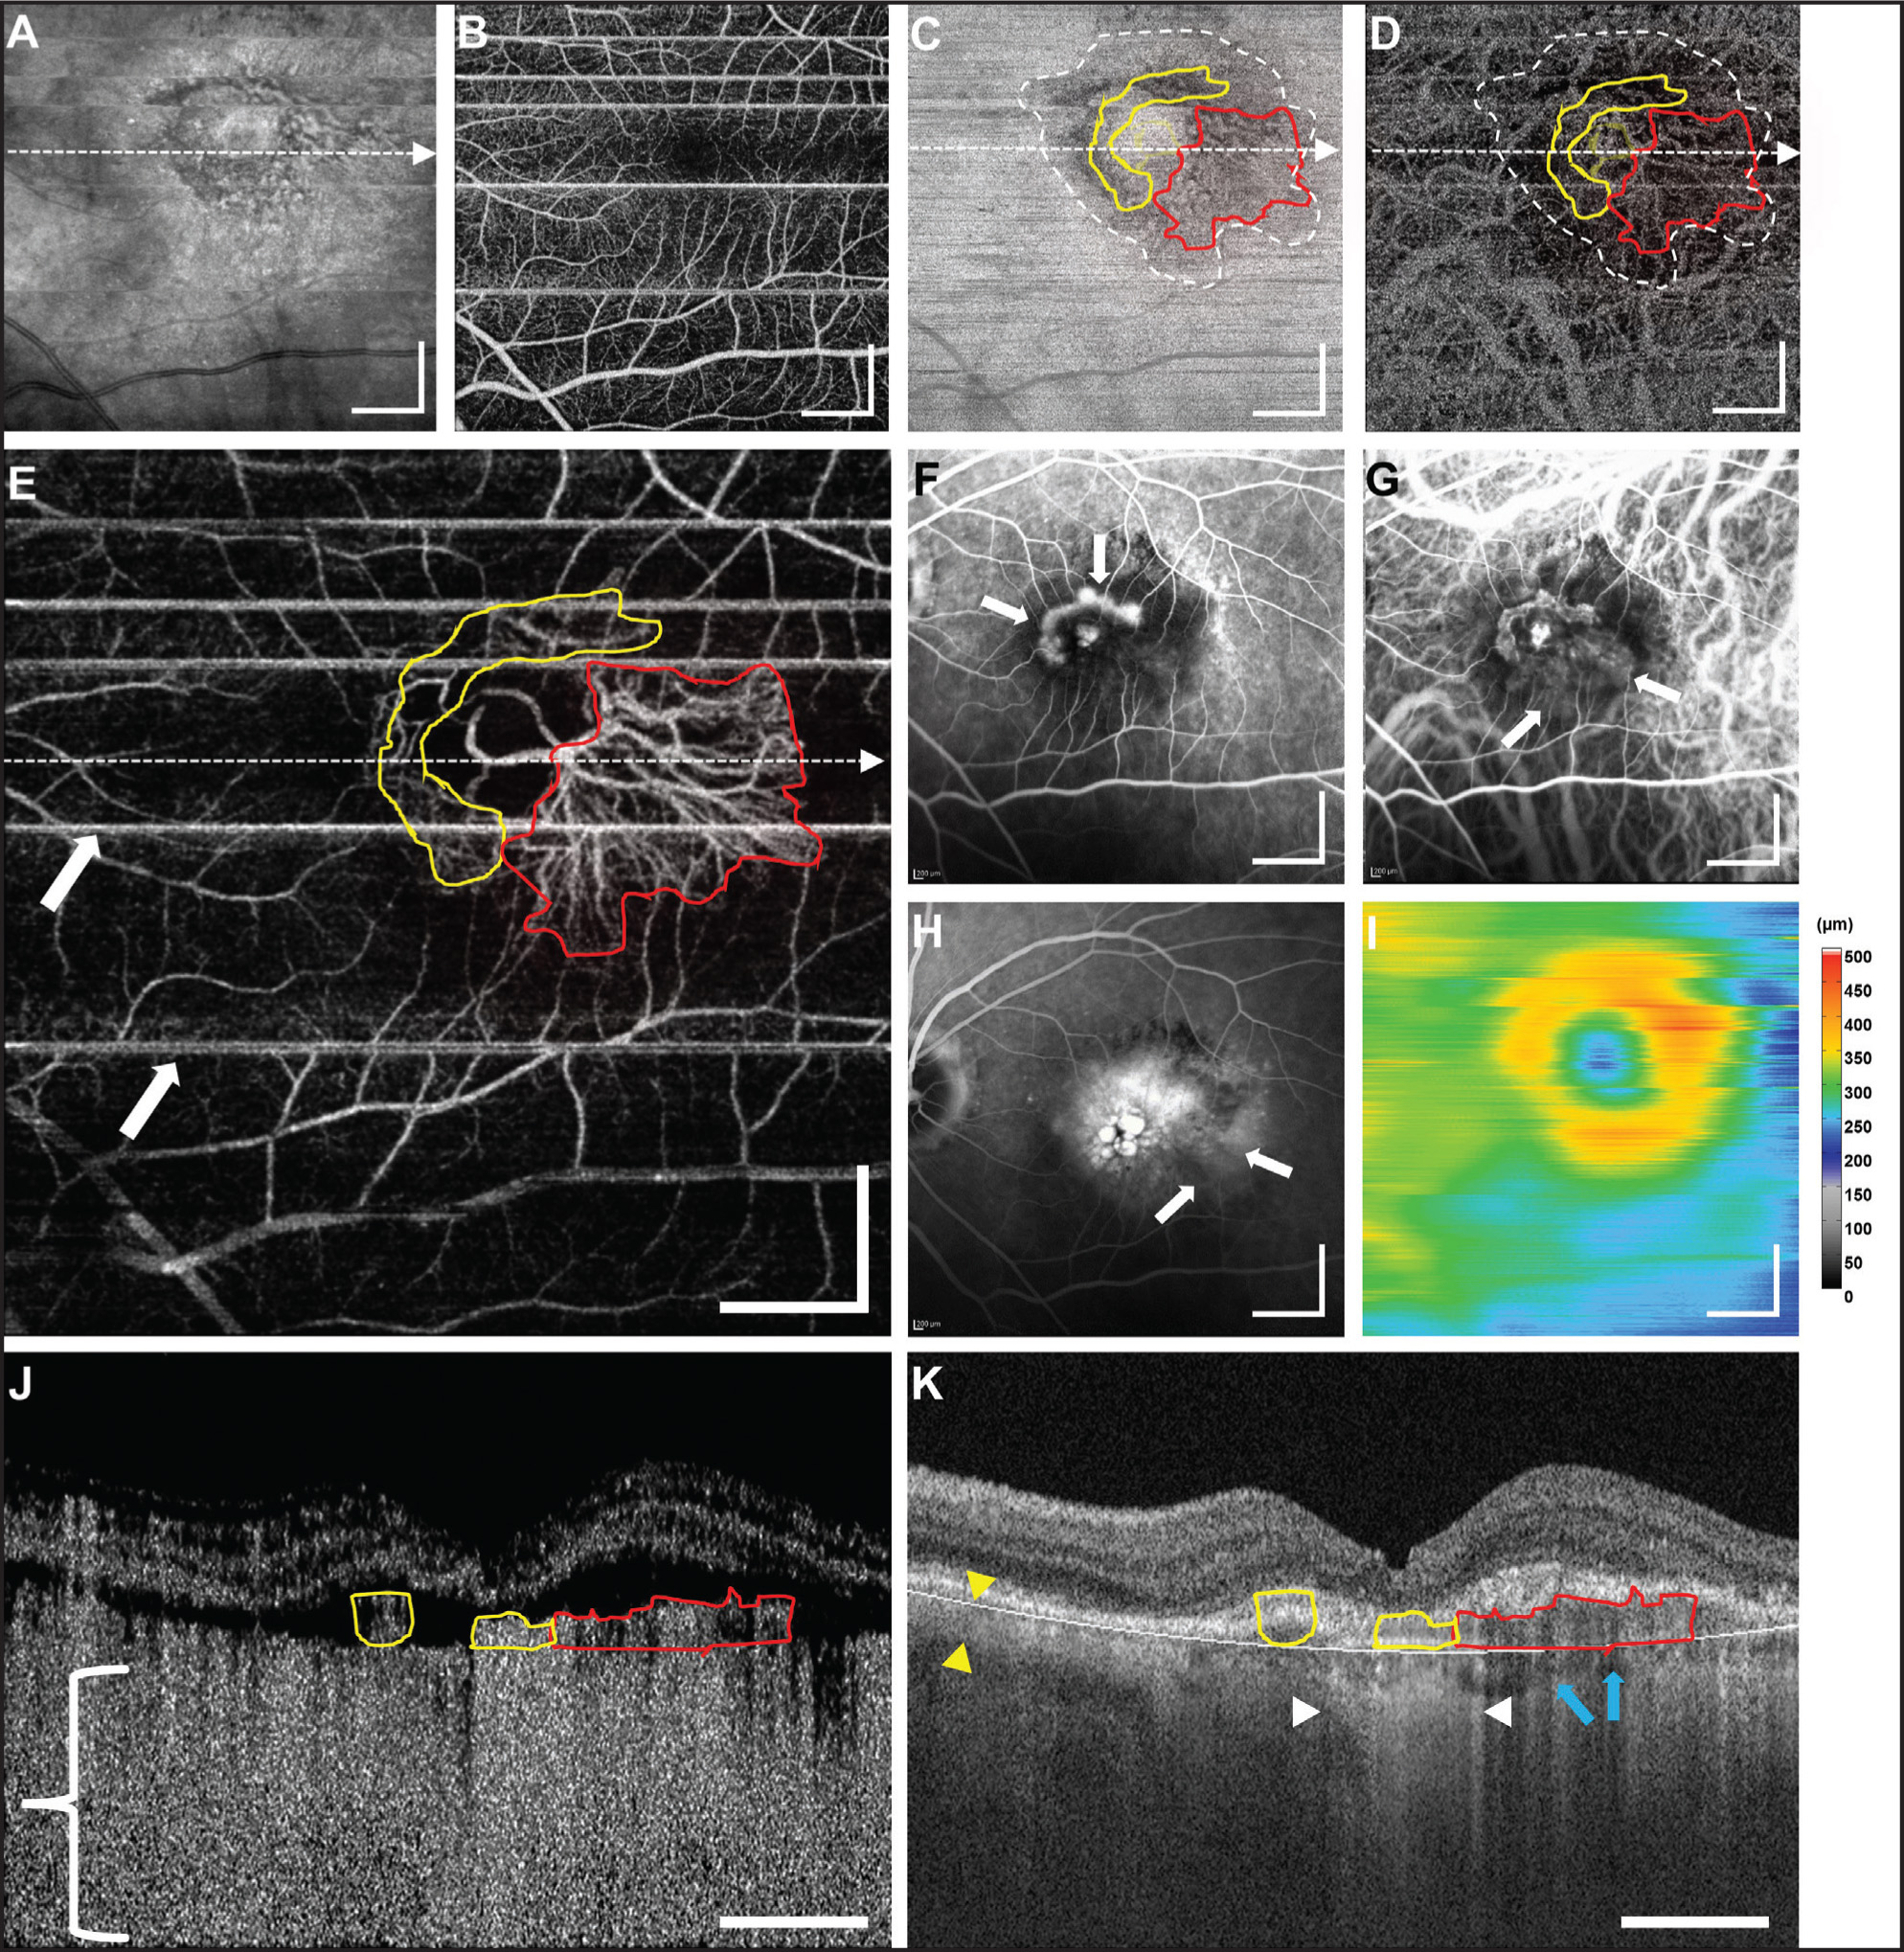 An 87-year-old patient with a choroidal neovascularization (CNV) lesion exhibiting both occult and classic components. (A) En face mean projection of entire OCT intensity volume. (B) En face projection of the OCT angiogram volume through the depths spanned by the retinal vasculature. (C) En face slice of the OCT intensity volume at the depth of the choriocapillaris. The white dashed contour encircles an area of lower intensity. (D) En face slice of the OCT angiogram volume at the depth of the choriocapillaris. (E) En face projection of the OCT angiogram volume through the depths spanned by the CNV. The red outlining corresponds to the occult components of the lesion, while the yellow outlining corresponds to the classic components. The arrows point to motion artifacts that appear as straight white lines through the image. (F) Early-phase FA. Arrows point to the classic component. (G) Early-phase ICGA. Arrows point to the occult component. (H) Late-phase FA. Arrows point to area of stippled hyperfluorescence. (I) OCT retinal thickness map. (J–K) OCT intensity and OCT angiogram cross-sections, respectively, corresponding to the white dashed horizontal lines in (E). The bracket in (J) roughly spans the depths in which the OCT angiogram B-scan is uninterpretable due to shadowing from the choriocapillaris and choroidal vasculature above. The yellow arrows in K indicate the thickness of the choroid away from the lesion, the white arrows demarcate an area of increased light penetration due to RPE atrophy, and the blue arrows correspond to a region of shadowing from the CNV lesion. All OCT images are from a 6 mm × 6 mm area, and all scale bars are 1 mm. All OCT and OCT angiogram images were generated from a single volumetric scan.